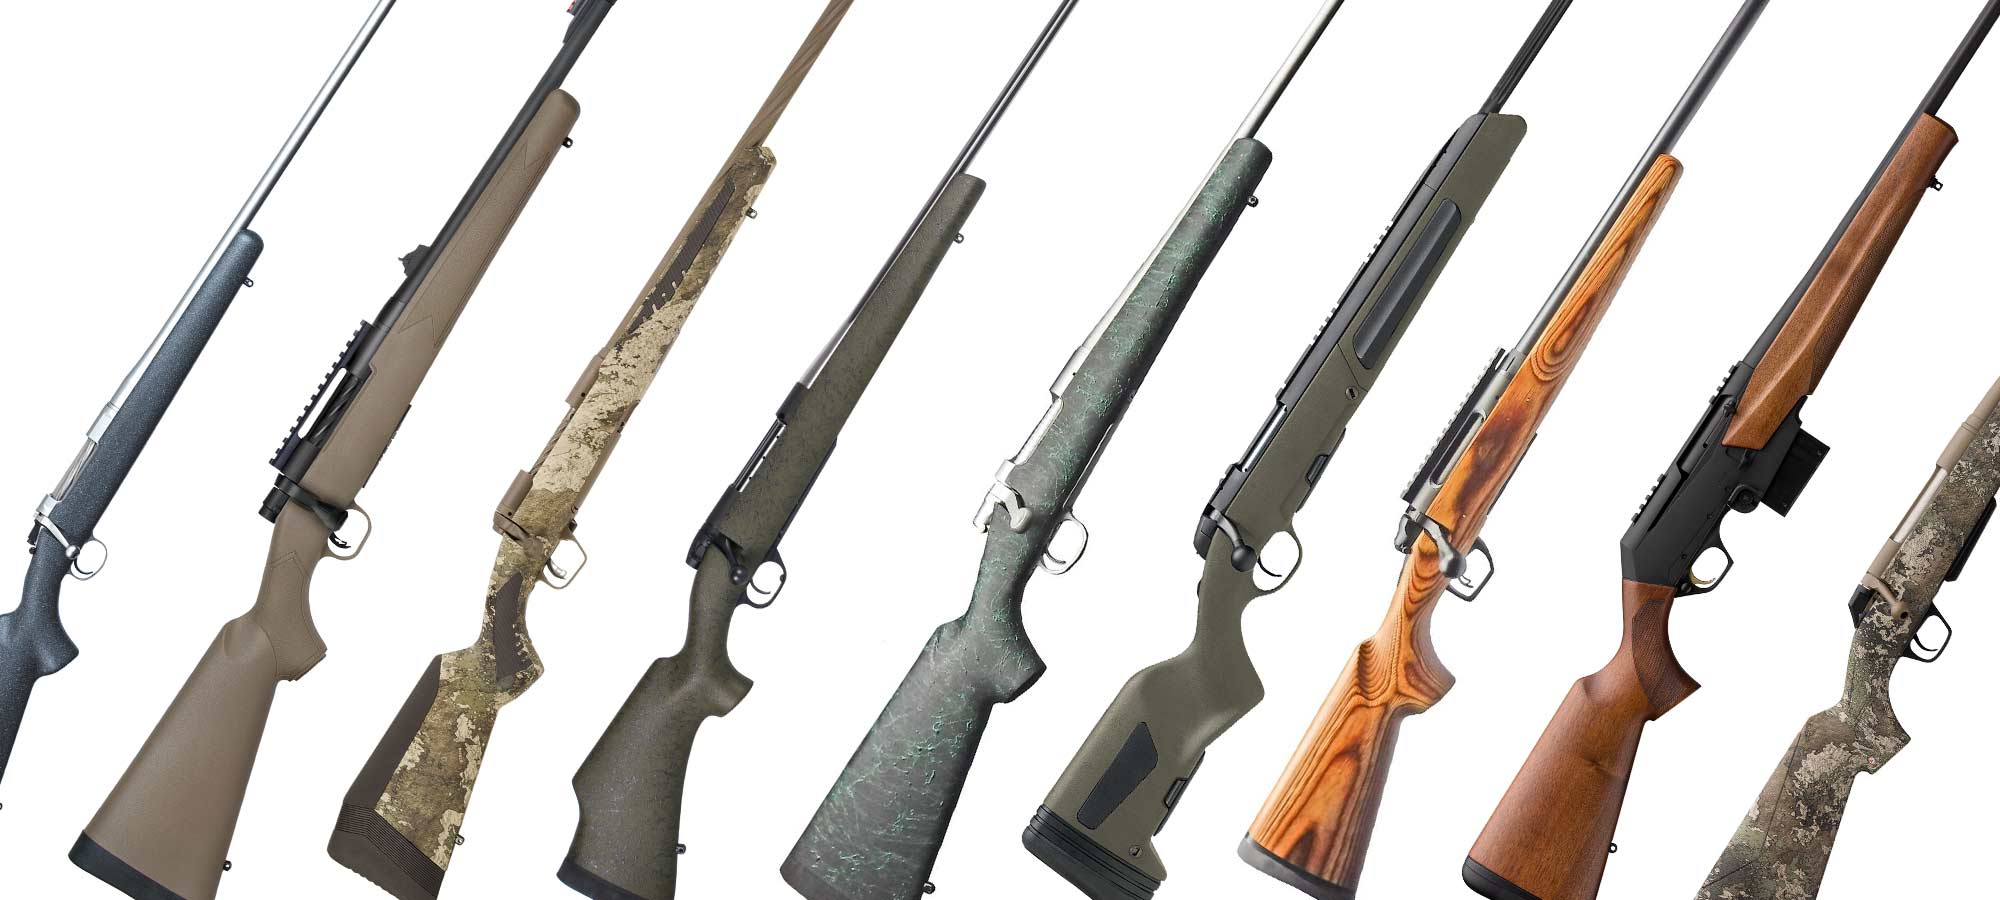 The Best New Hunting Rifles from the 2019 SHOT Show | Field